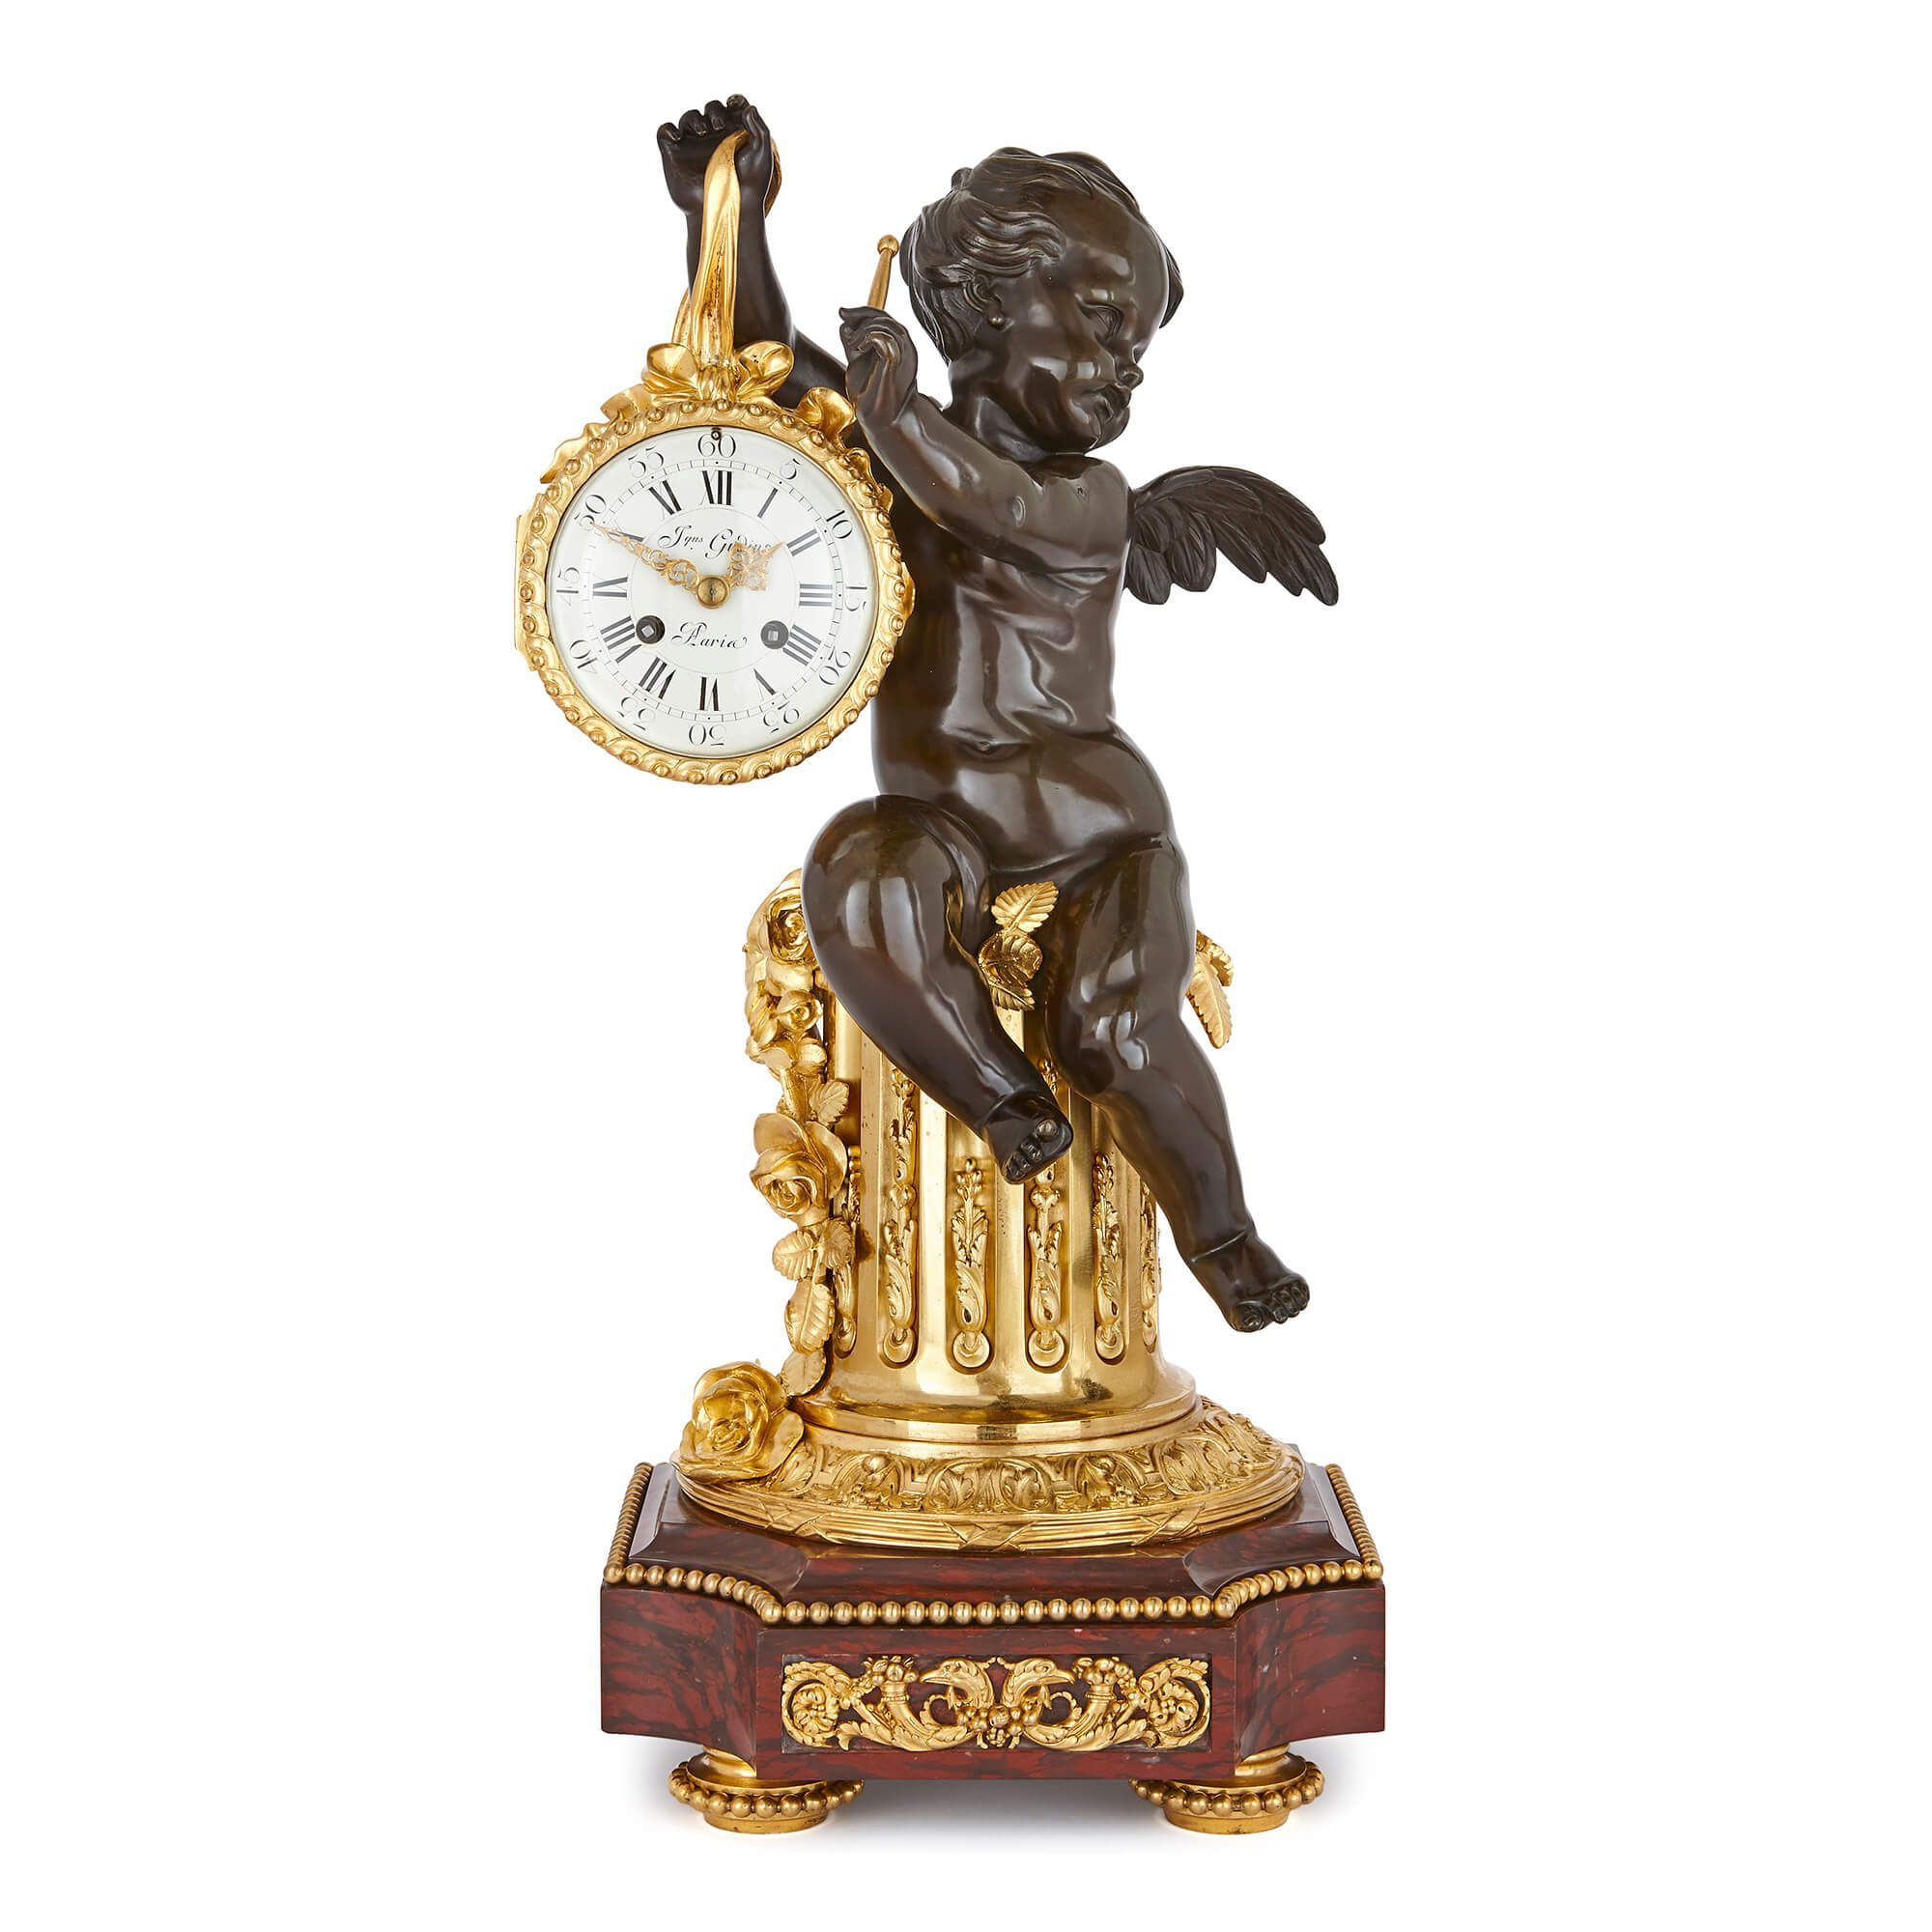 Antique Gilt Patinated Bronze And Marble Mantel Clock